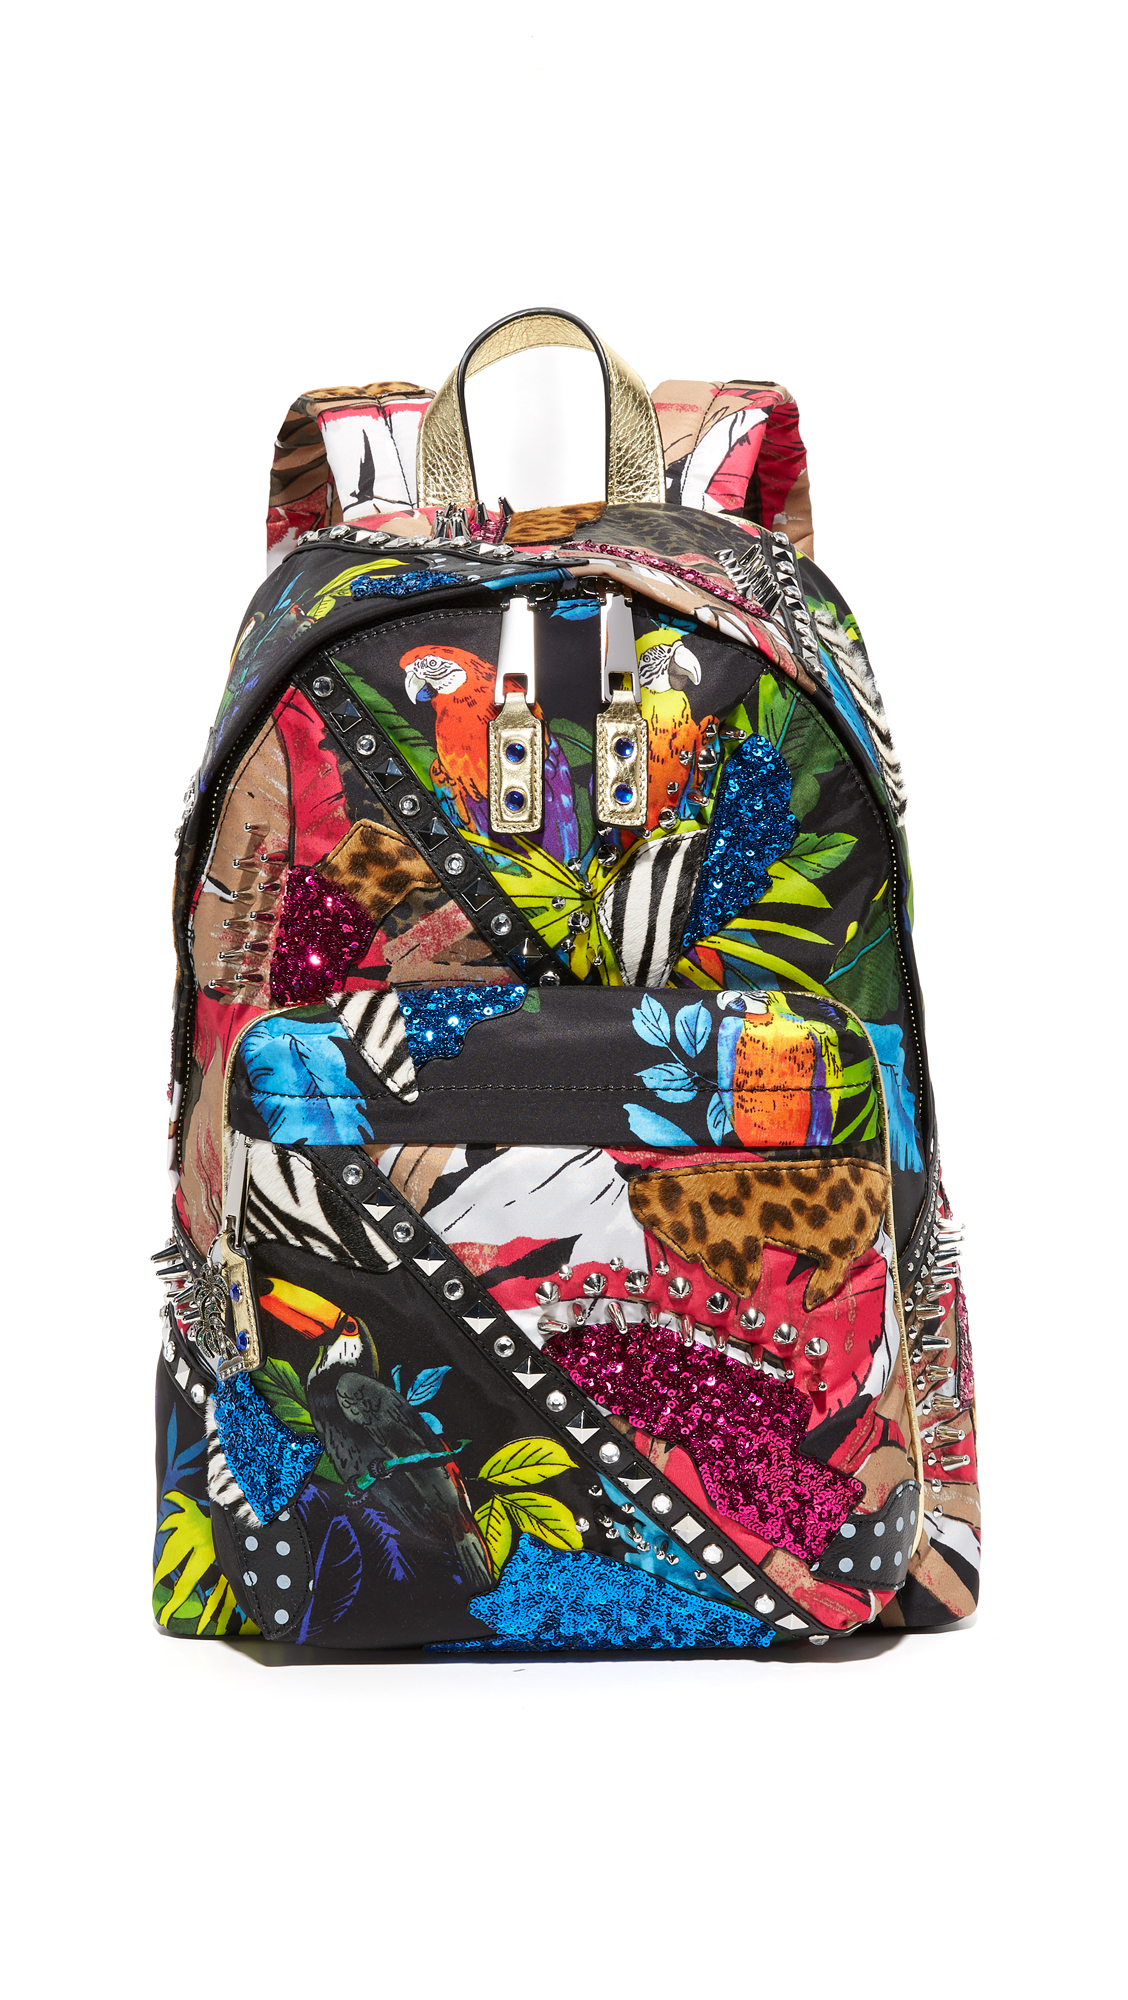 This printed Marc Jacobs backpack is detailed with an attention grabbing mix of leather, haircalf, and sequined panels. Rows of crystals and studs complete the bold look. Zip front pocket. Wraparound top zip and lined, 1 pocket